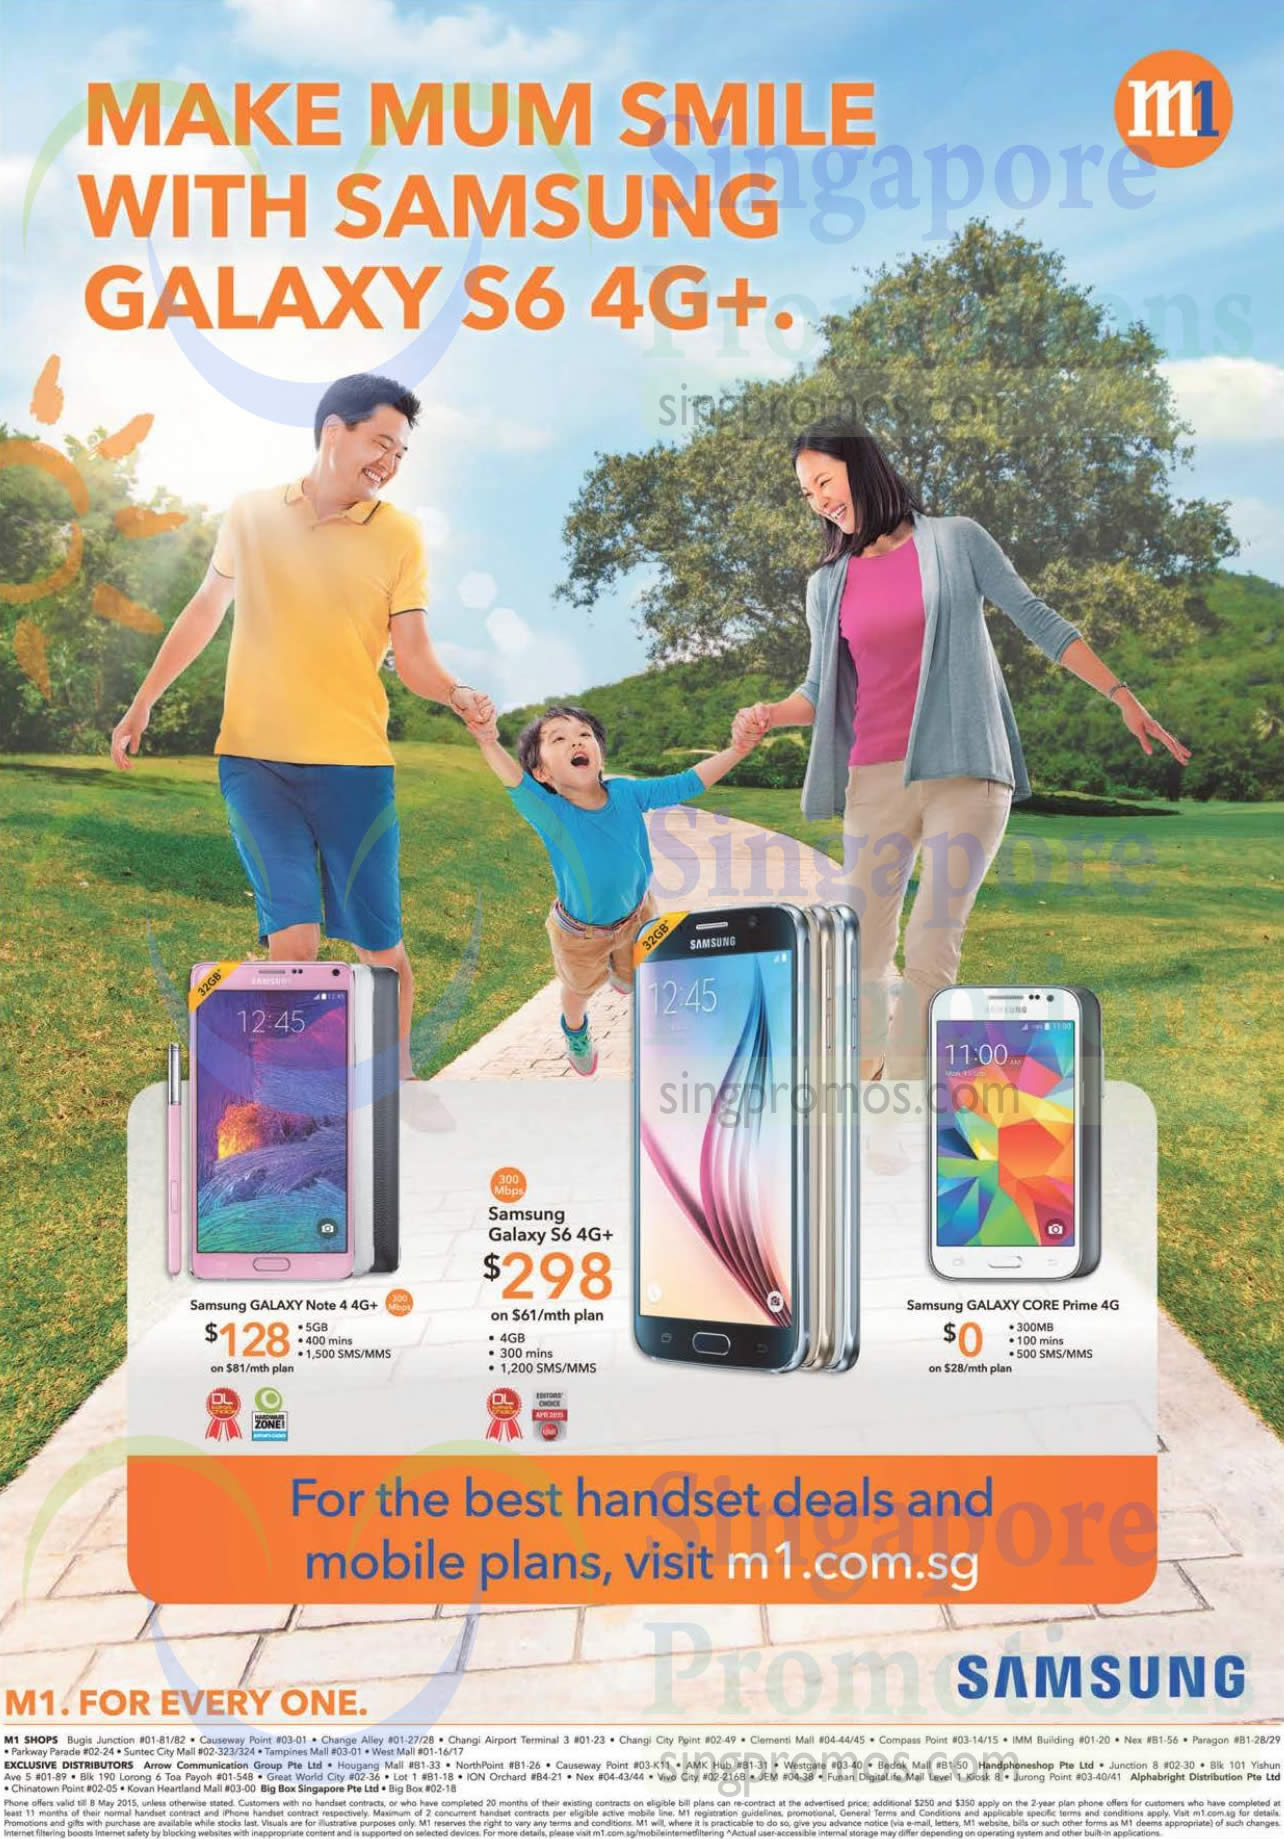 Samsung Galaxy Note 4, Samsung Galaxy S6, Samsung Galaxy Core Prime